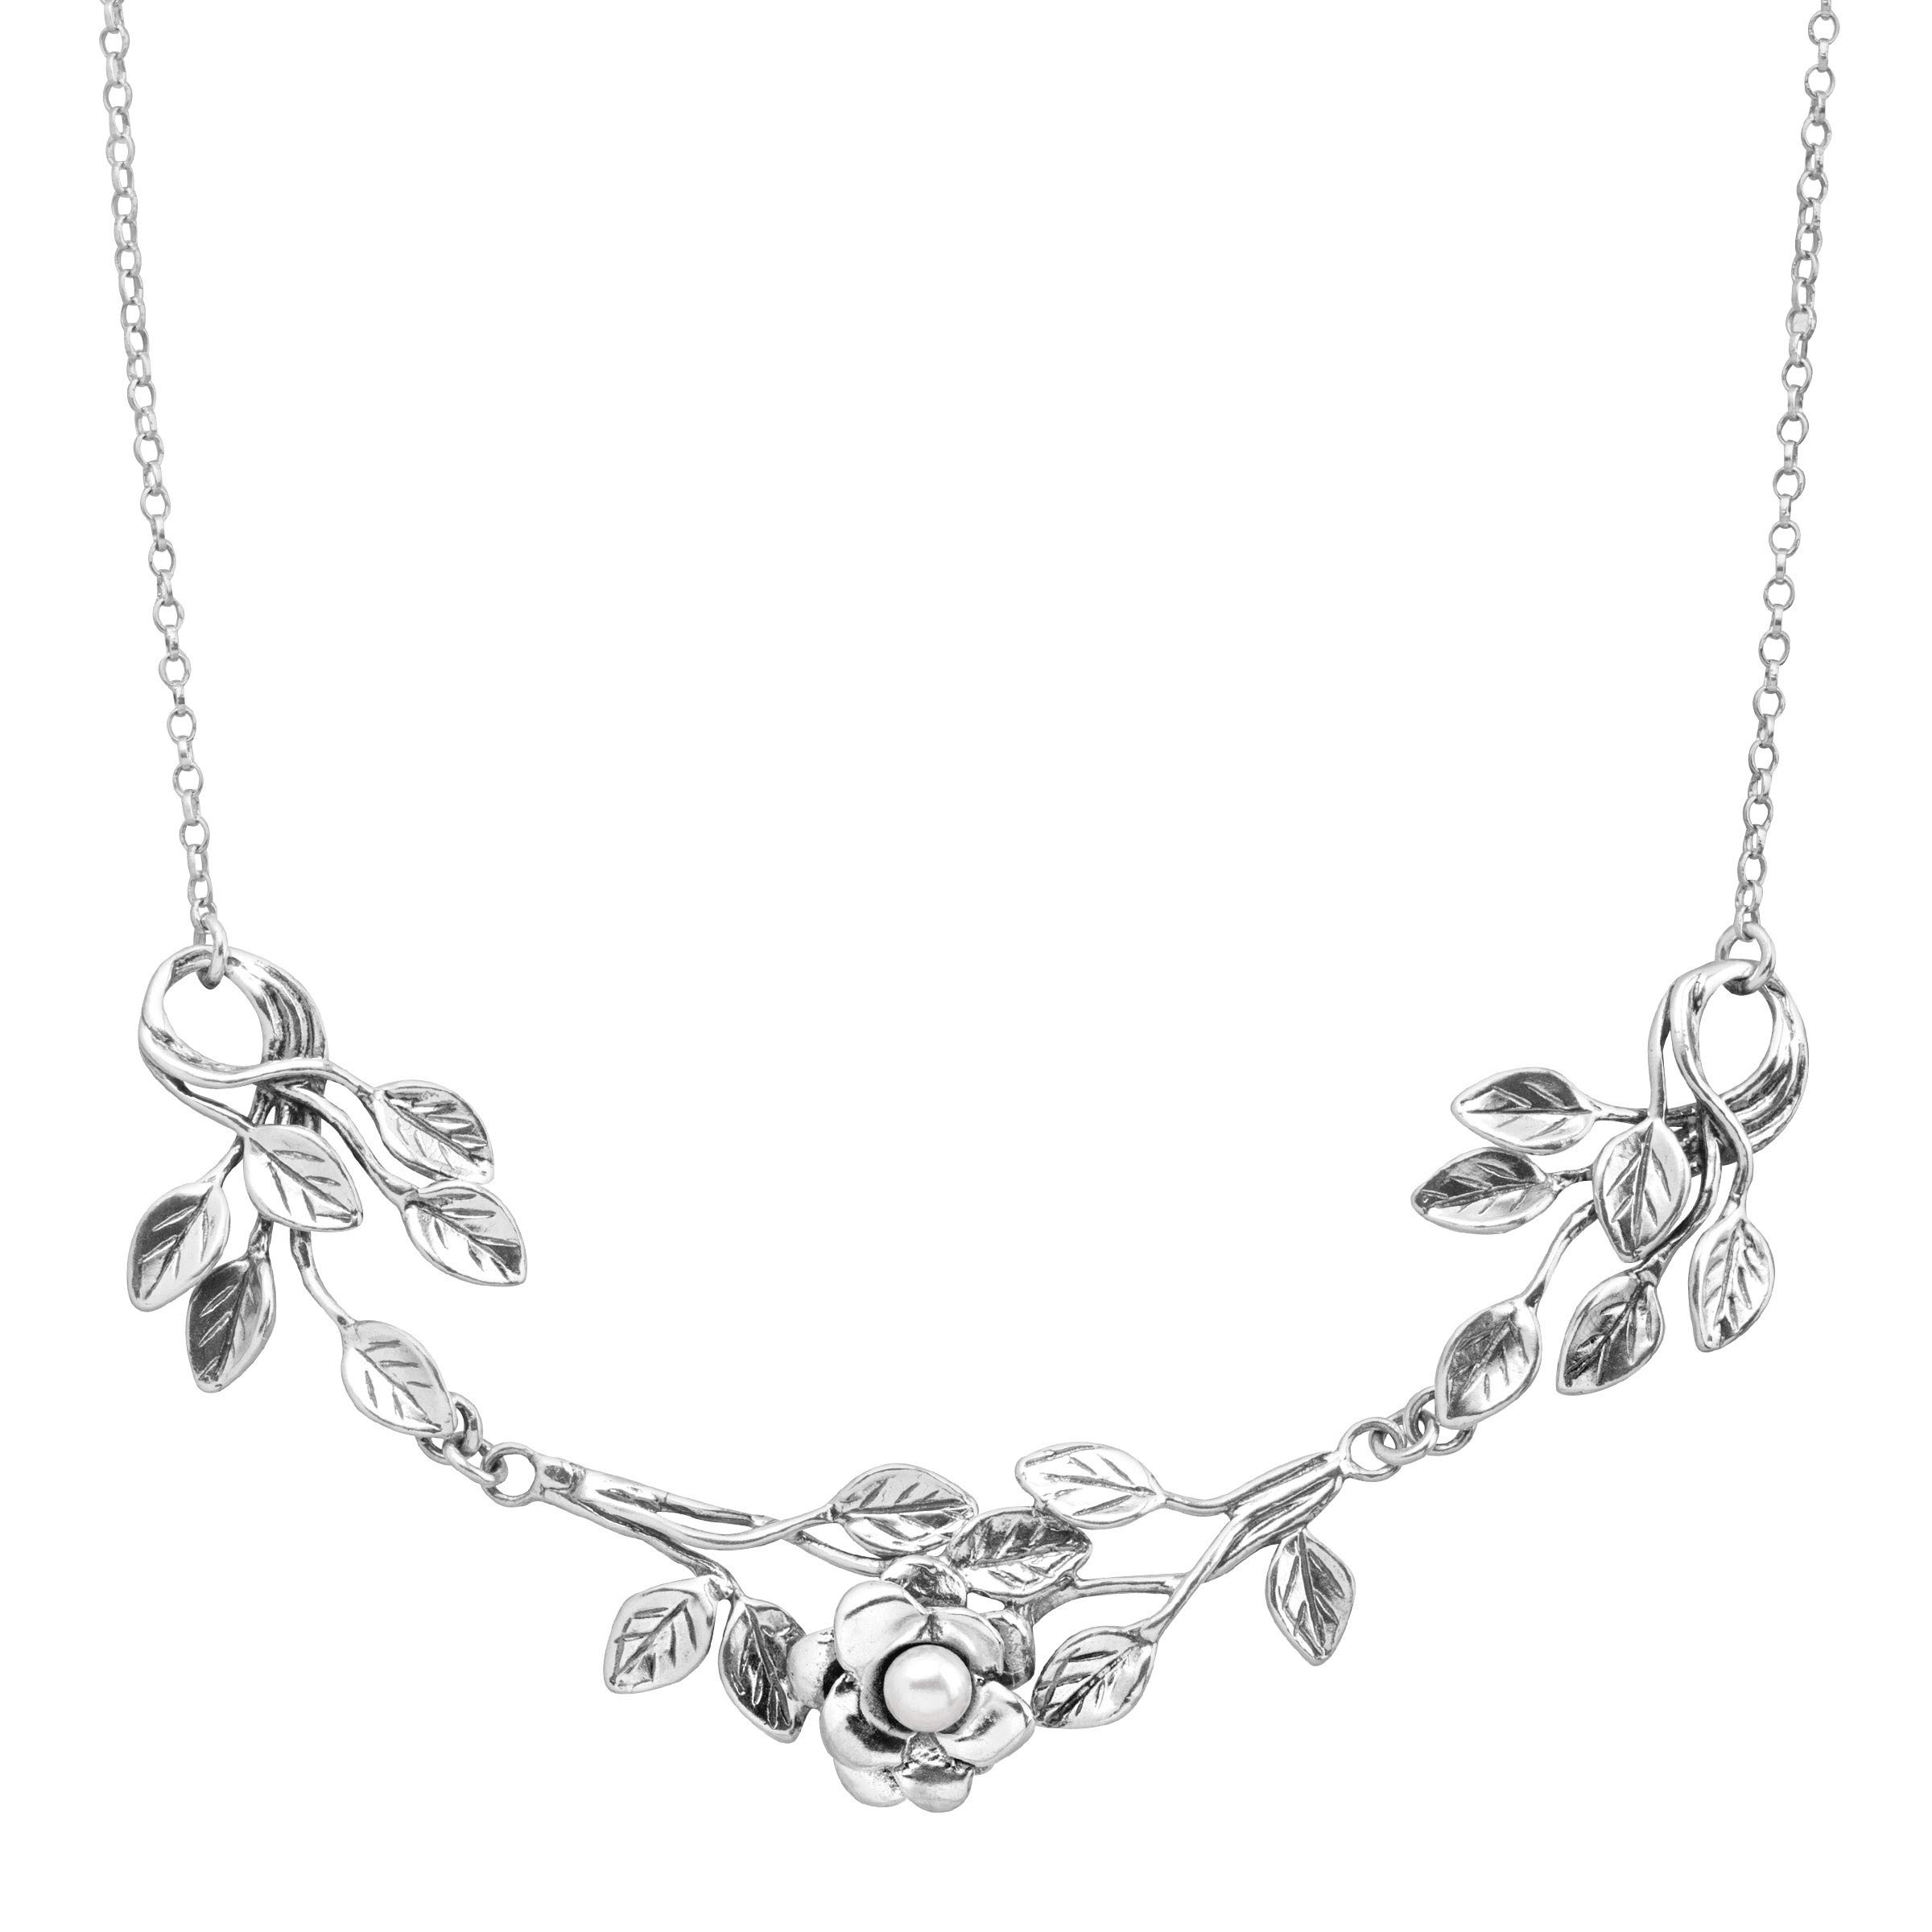 Silpada 'Rhyme or Rhythm' 4 mm Freshwater Cultured Pearl Vine Necklace in Sterling Silver